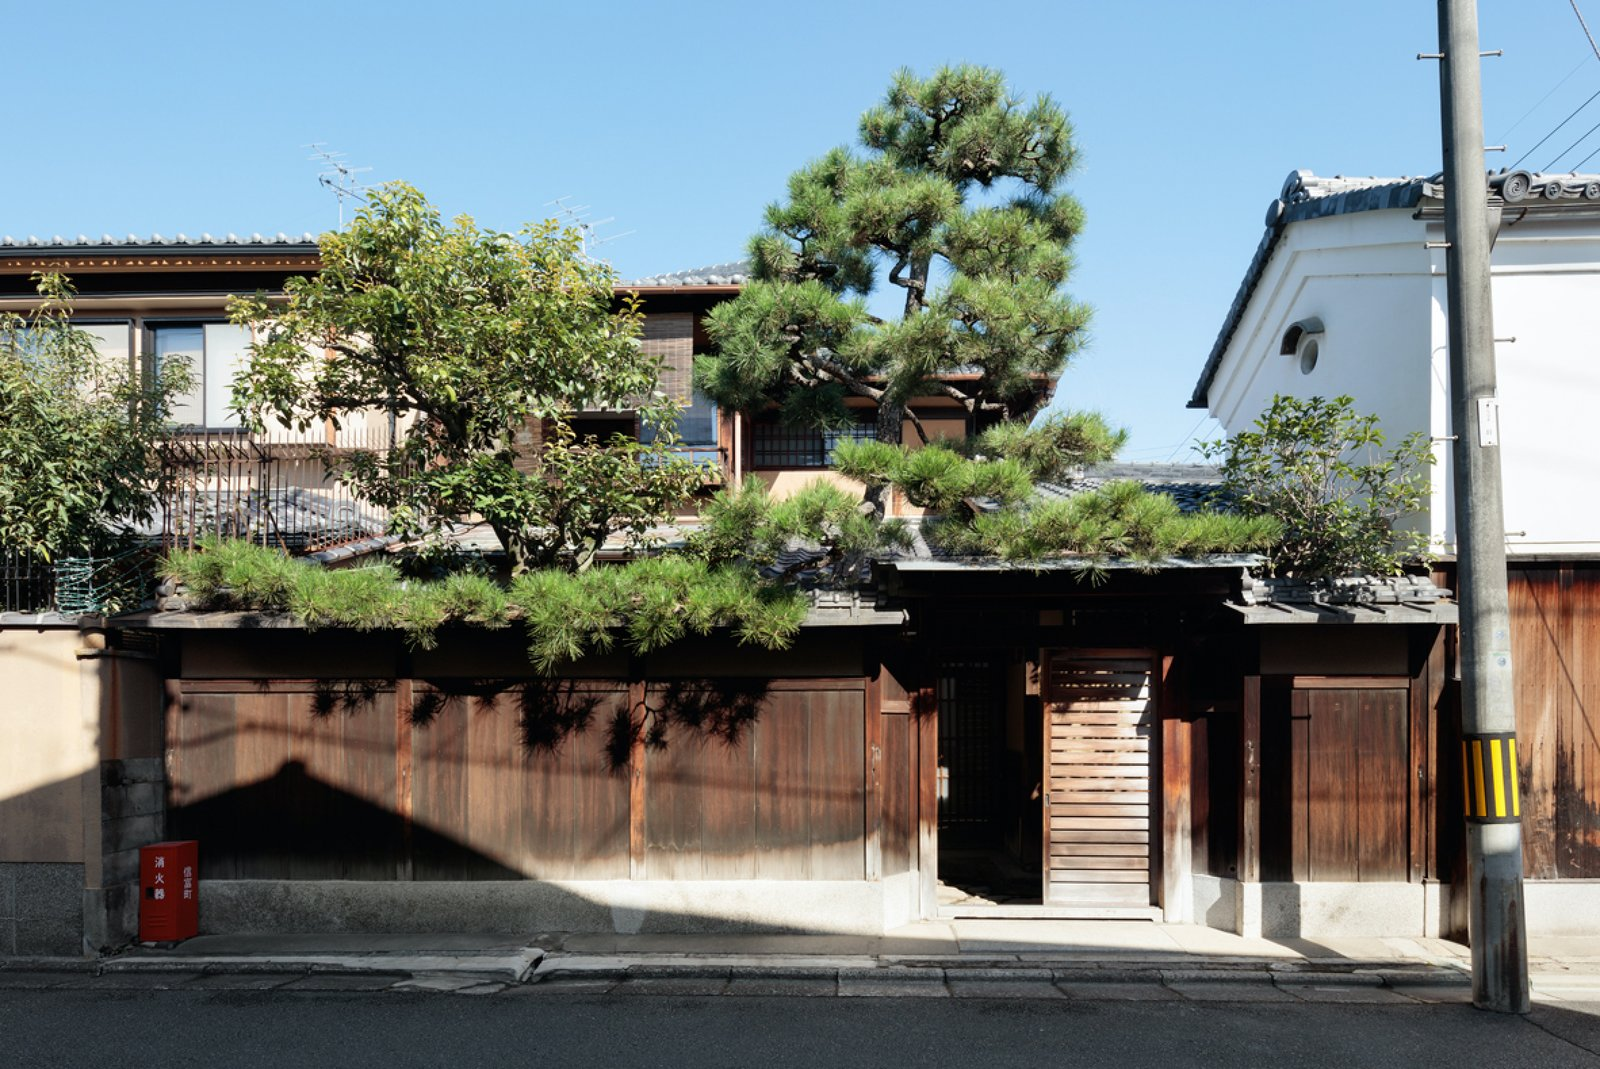 A Minimalist Townhouse Provides Serene Accommodations in Historic Kyoto